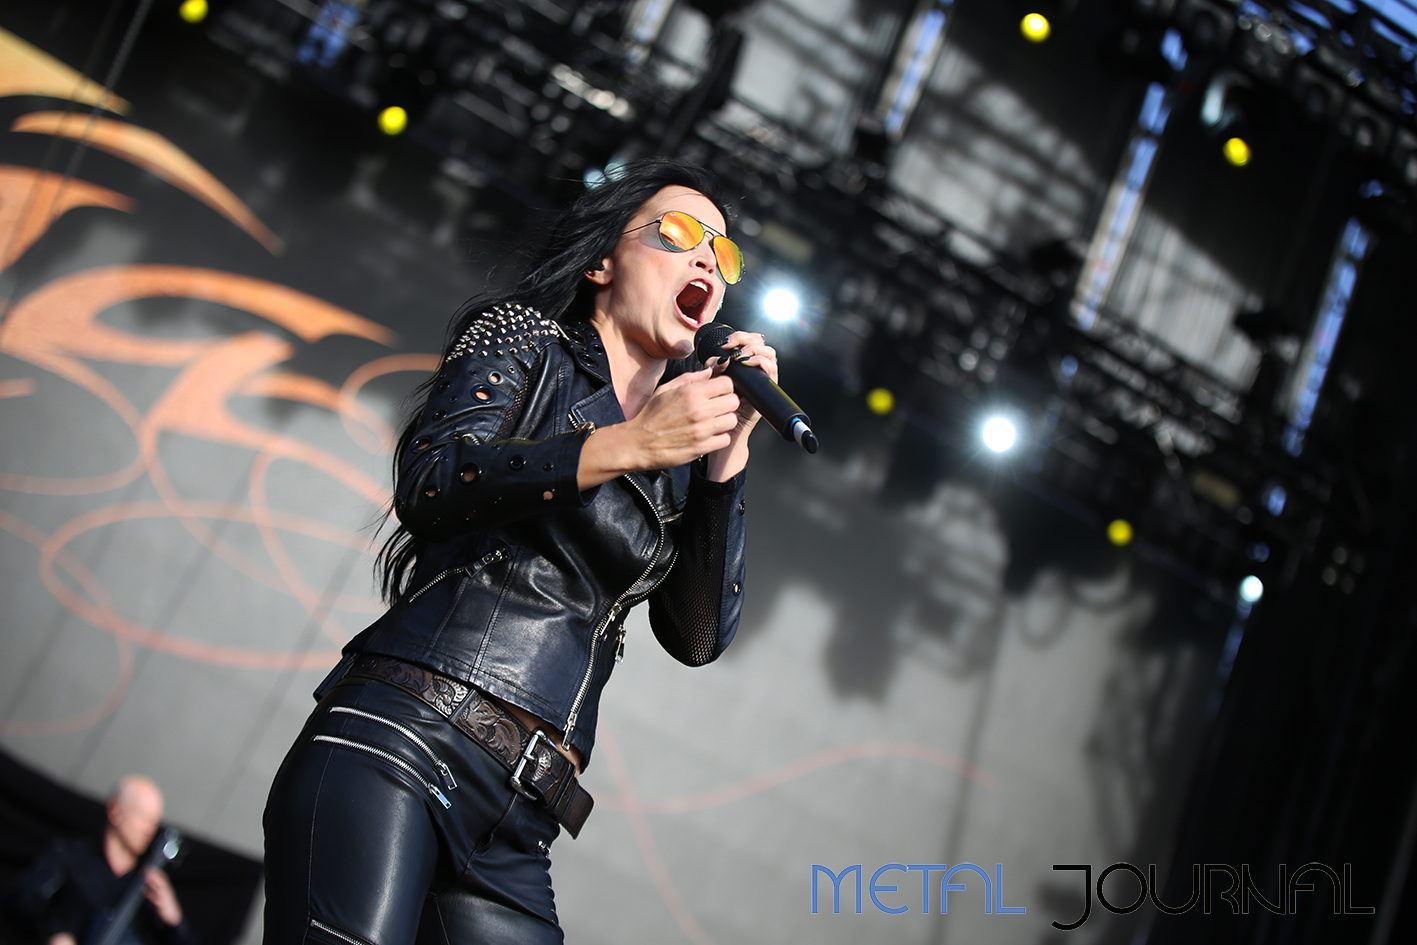 tarja metal journal rock the coast 2019 pic 2